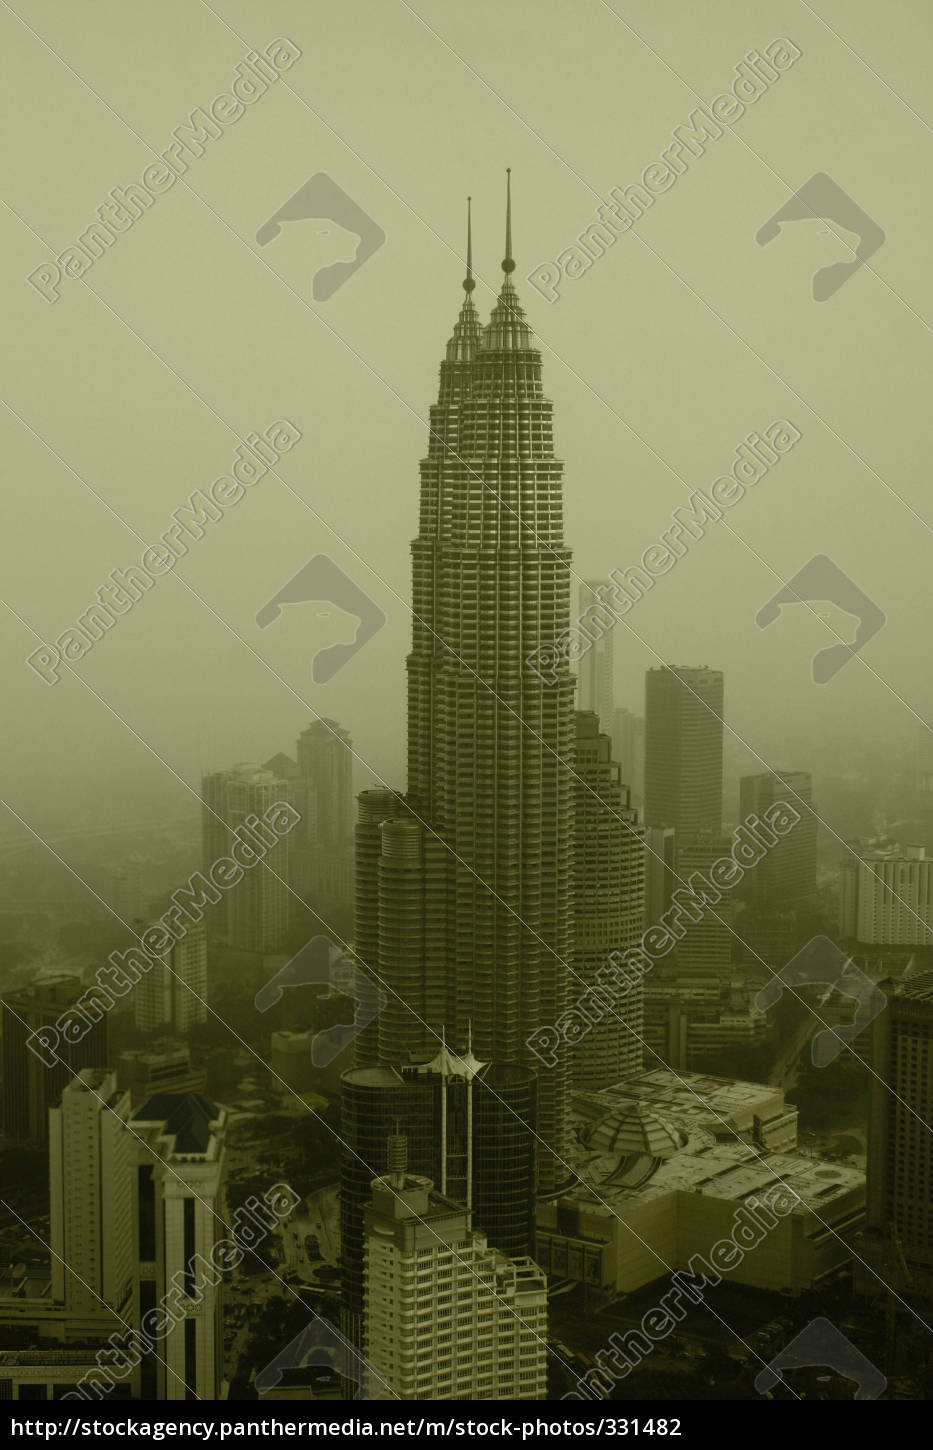 petronas, towers - 331482